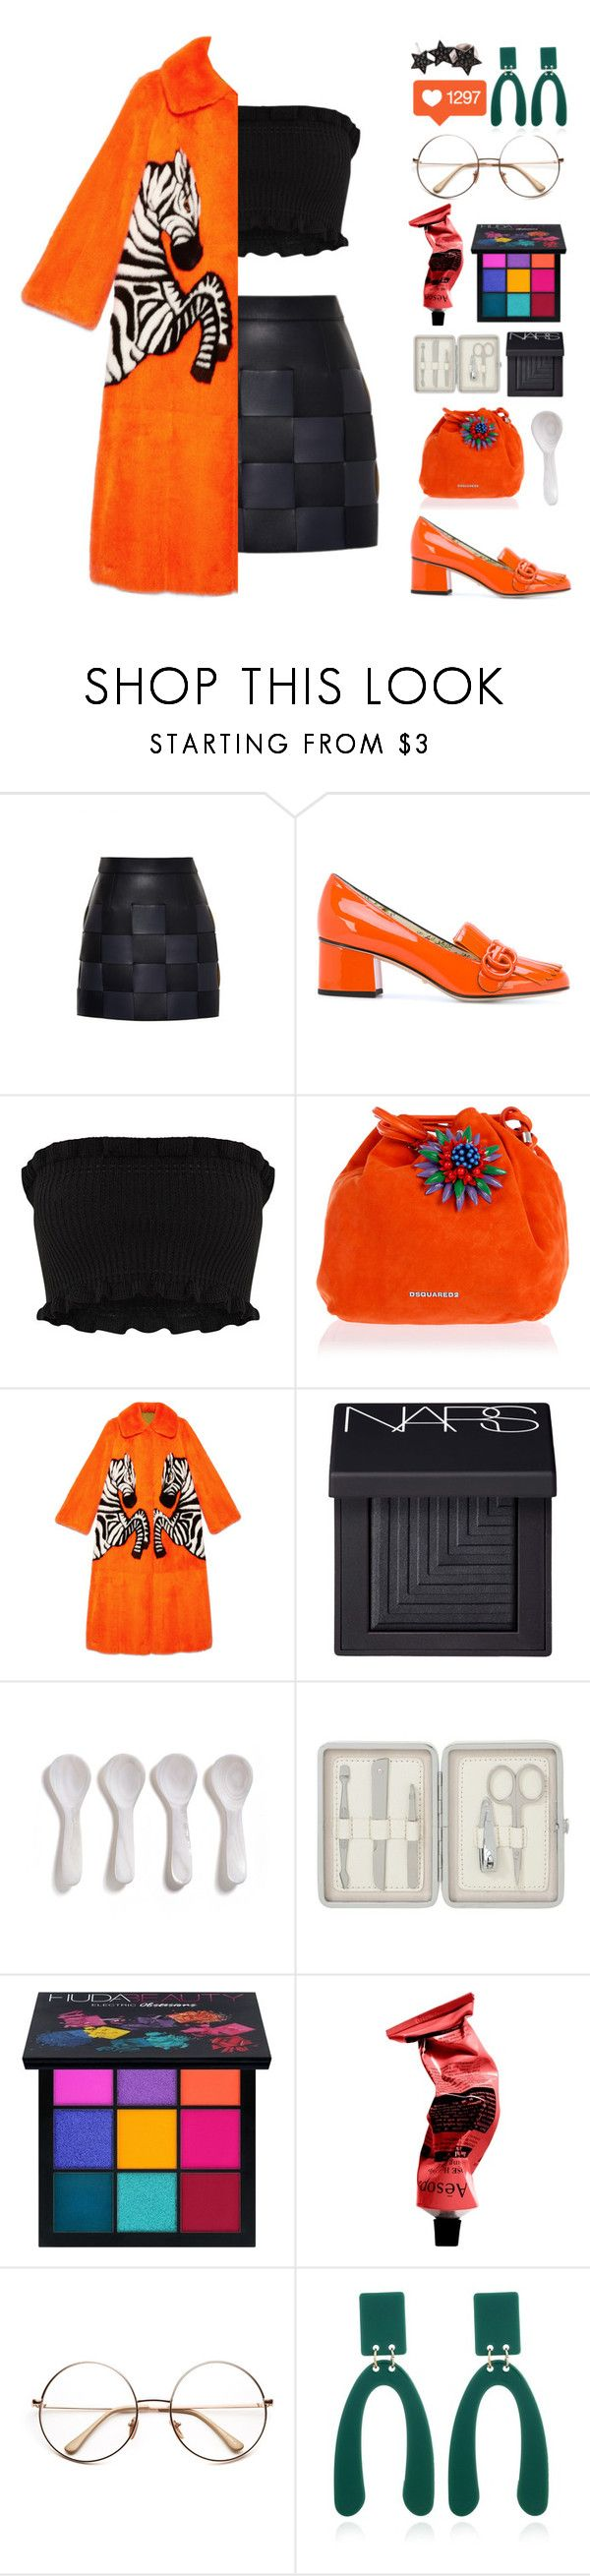 """""""I'll Decide When"""" by finding-0riginality ❤ liked on Polyvore featuring Marco de Vincenzo, Gucci, Dsquared2, NARS Cosmetics, John Lewis, Huda Beauty, Aesop and Alinka"""